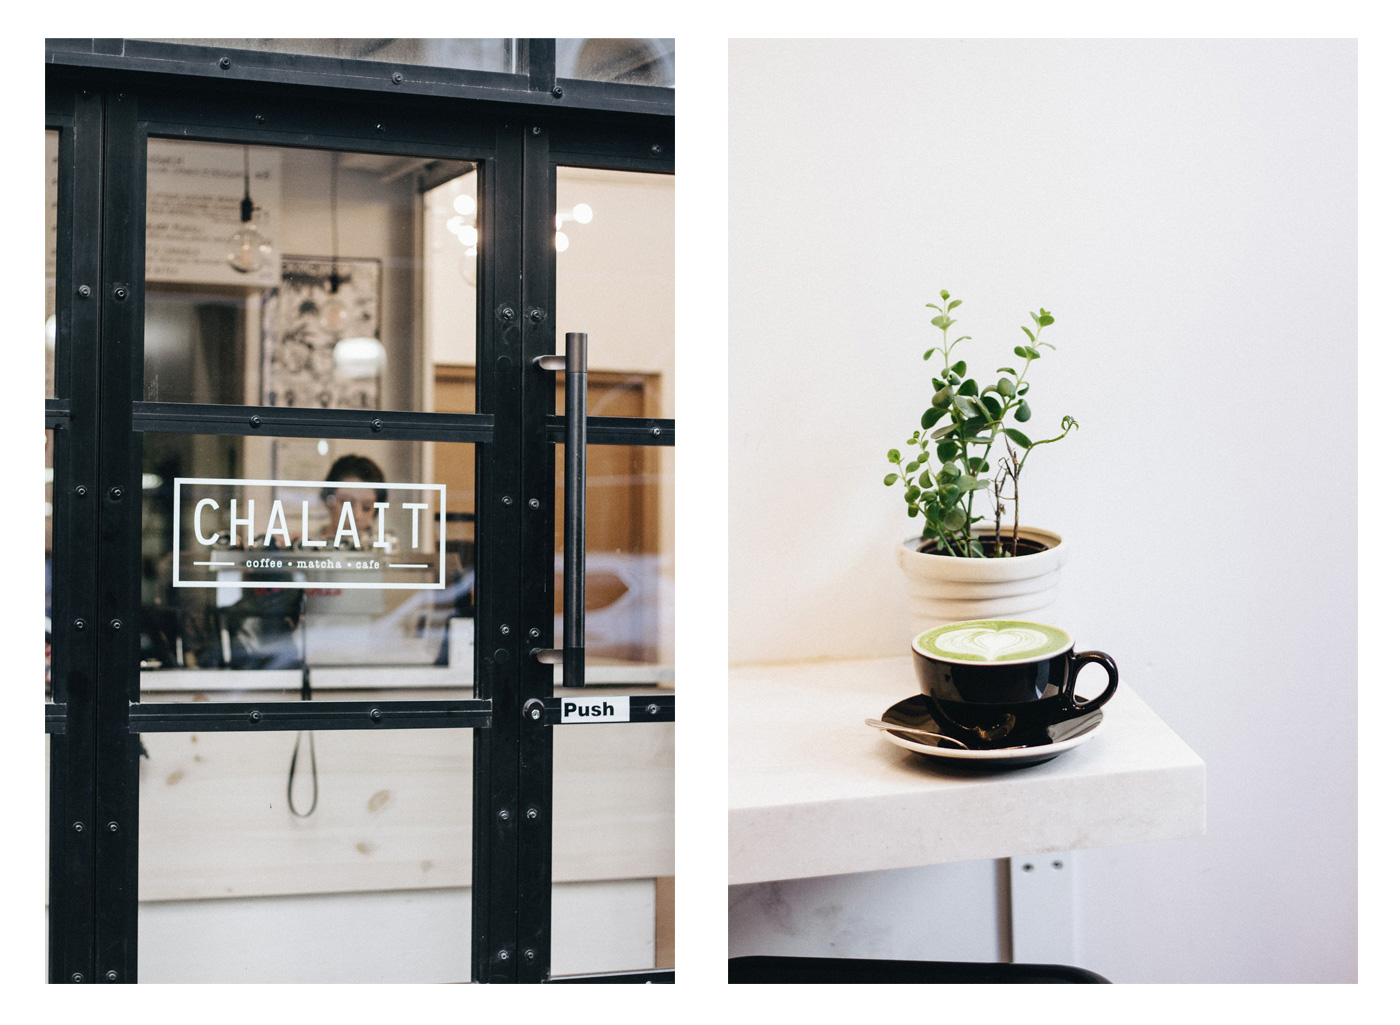 Le Chalait aka the best place in new york city to drink a matcha latte